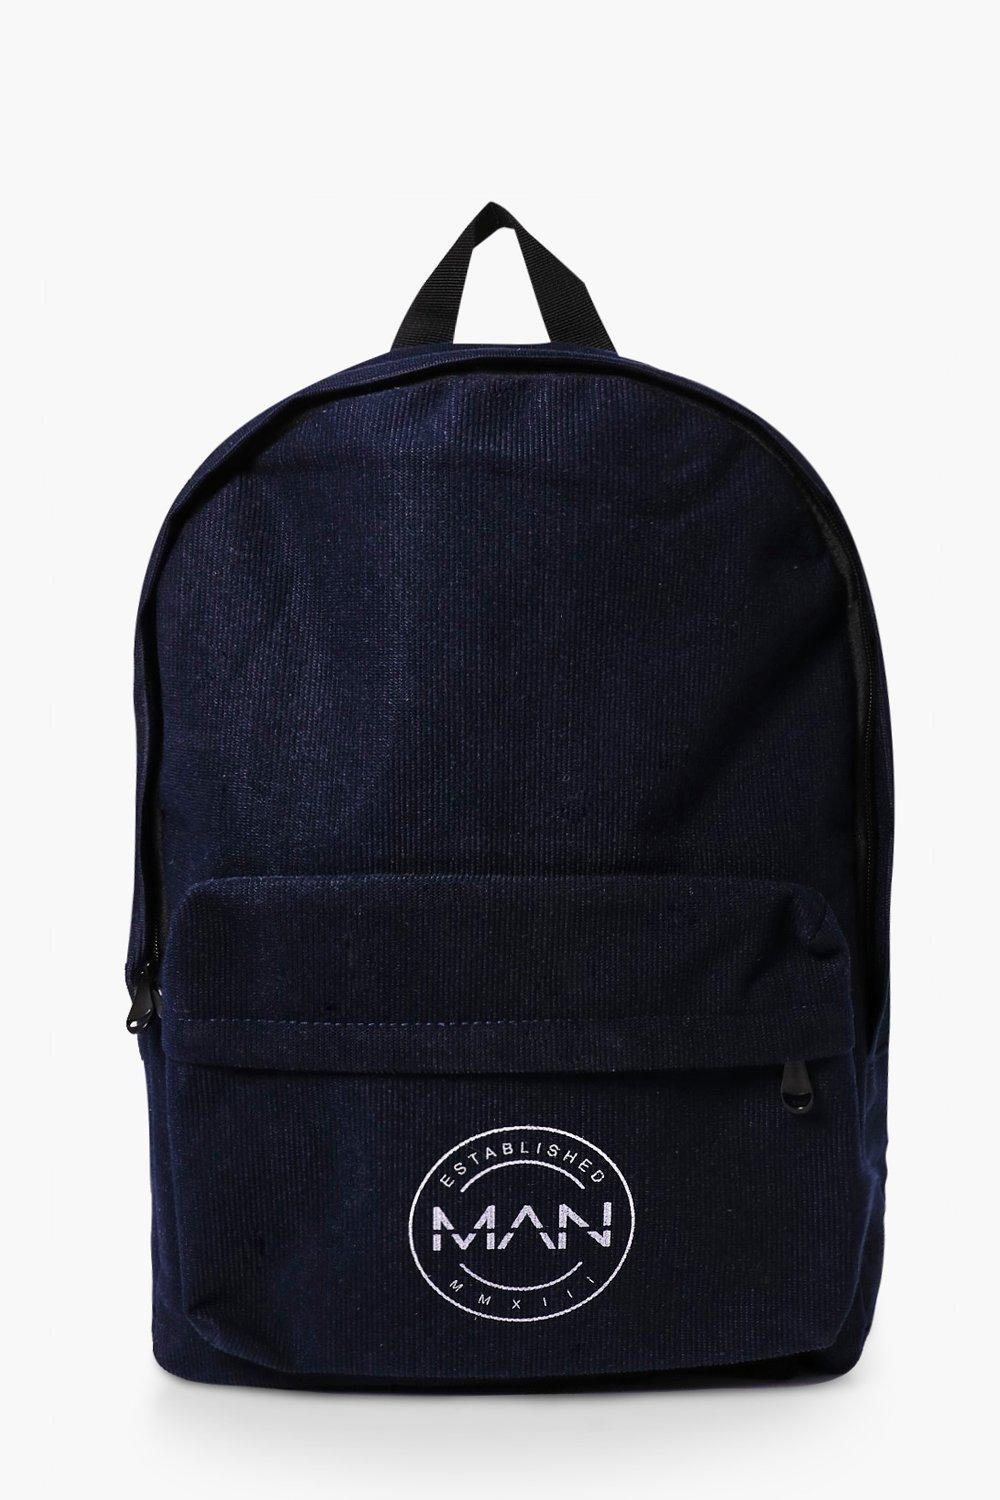 Backpack with Man Logo - navy - Navy Backpack with